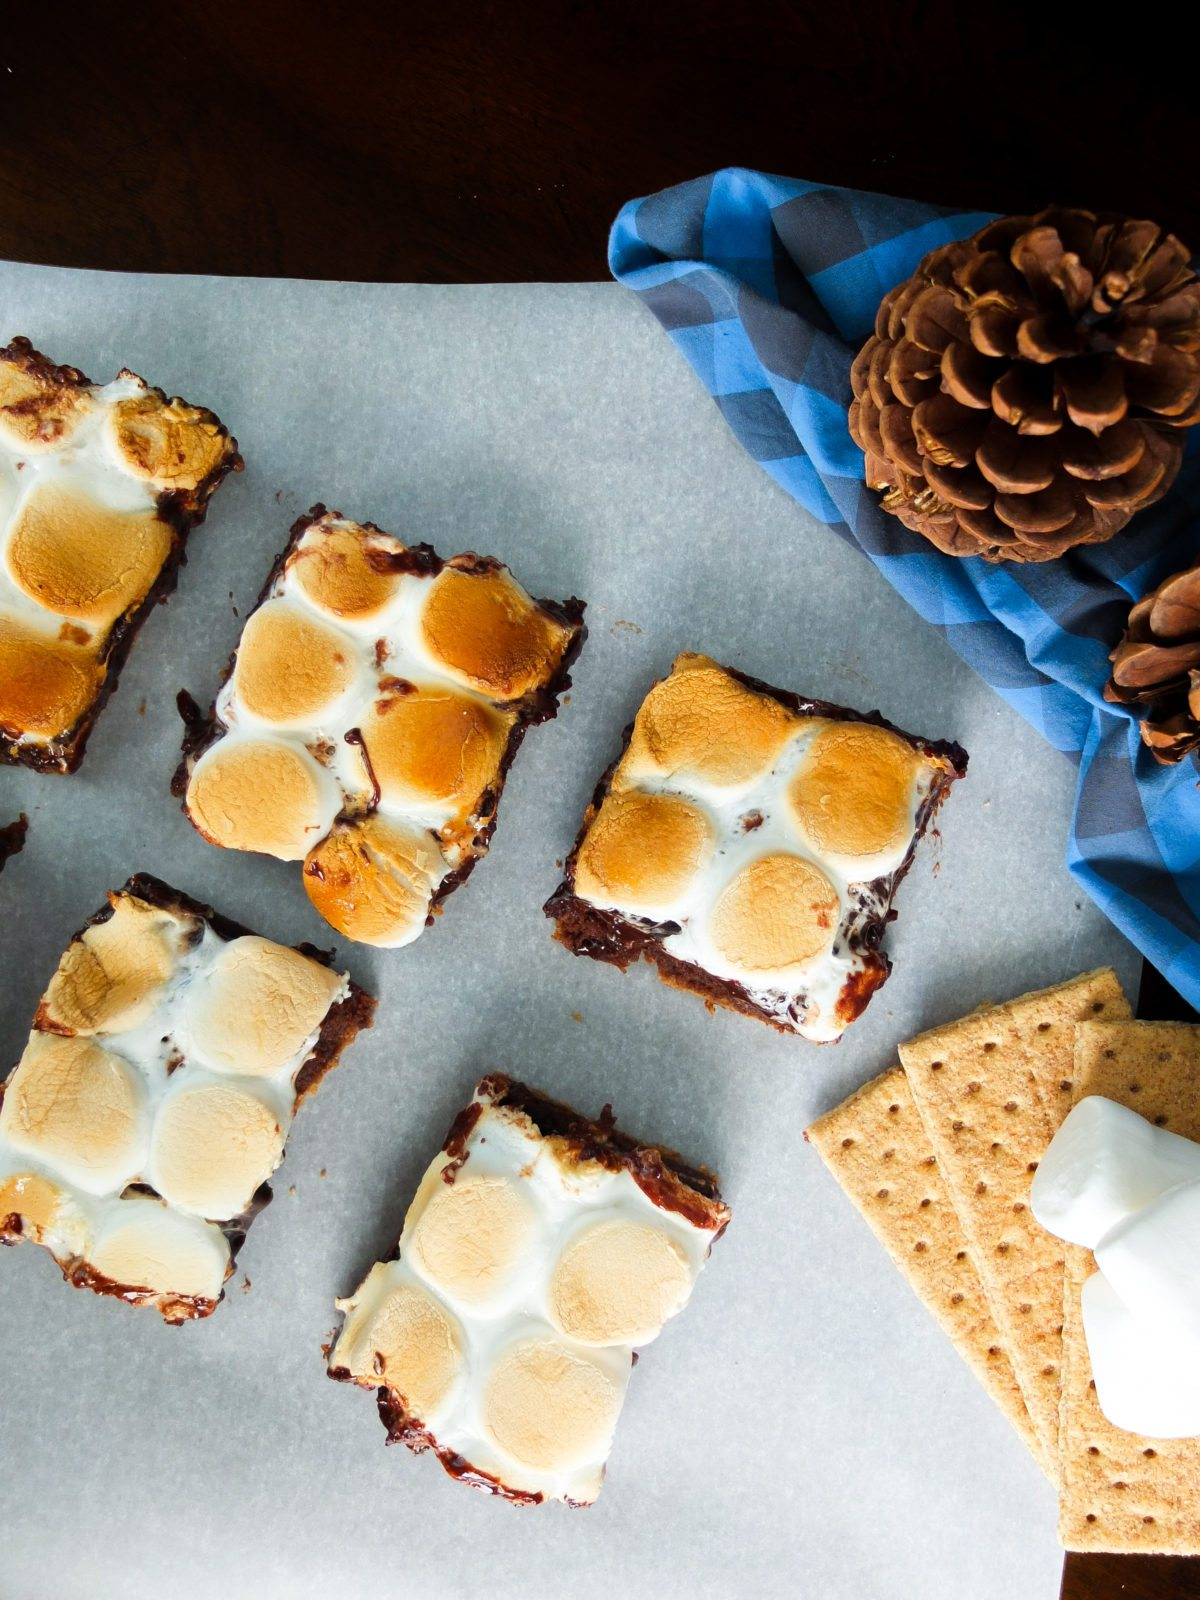 Delicious s'more dessert bars made with brownie batter, chocolate ganache, and toast marshmallows for a perfectly sweet and gooey fall dessert. Perfect recipe for campfire parties or fall parties.